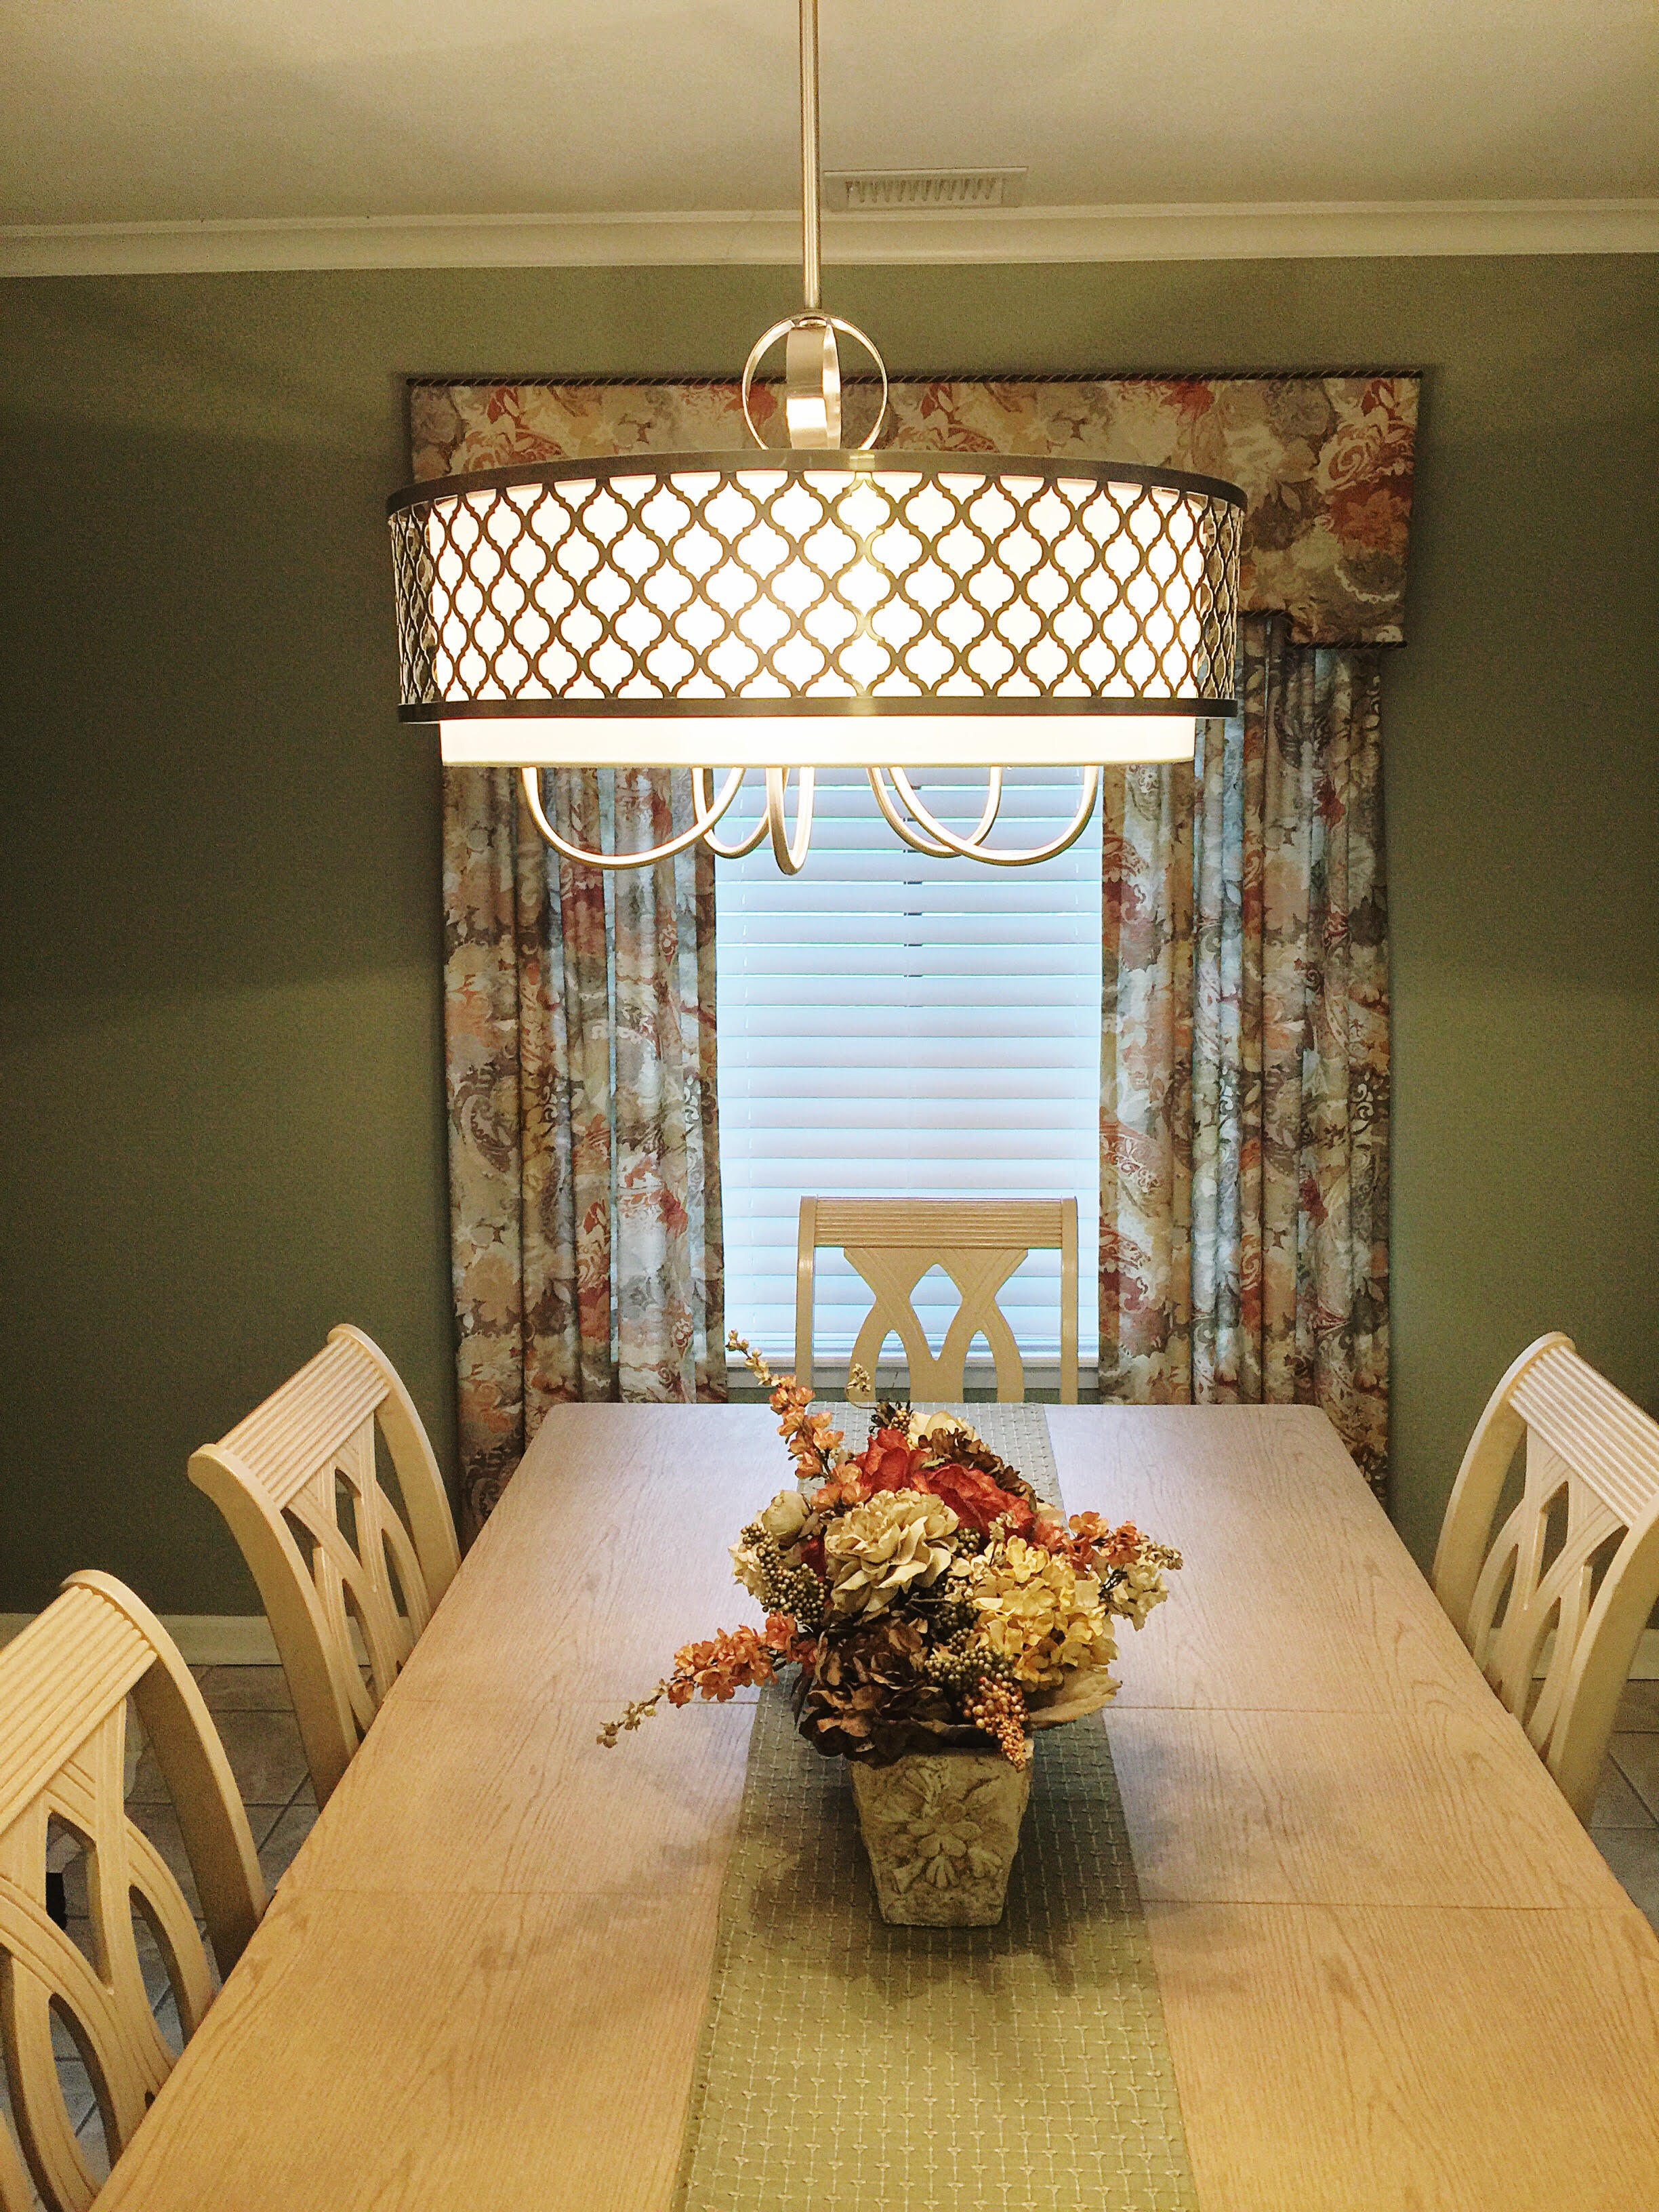 Added new table top, lighting, floral arrangement & wall accessories.